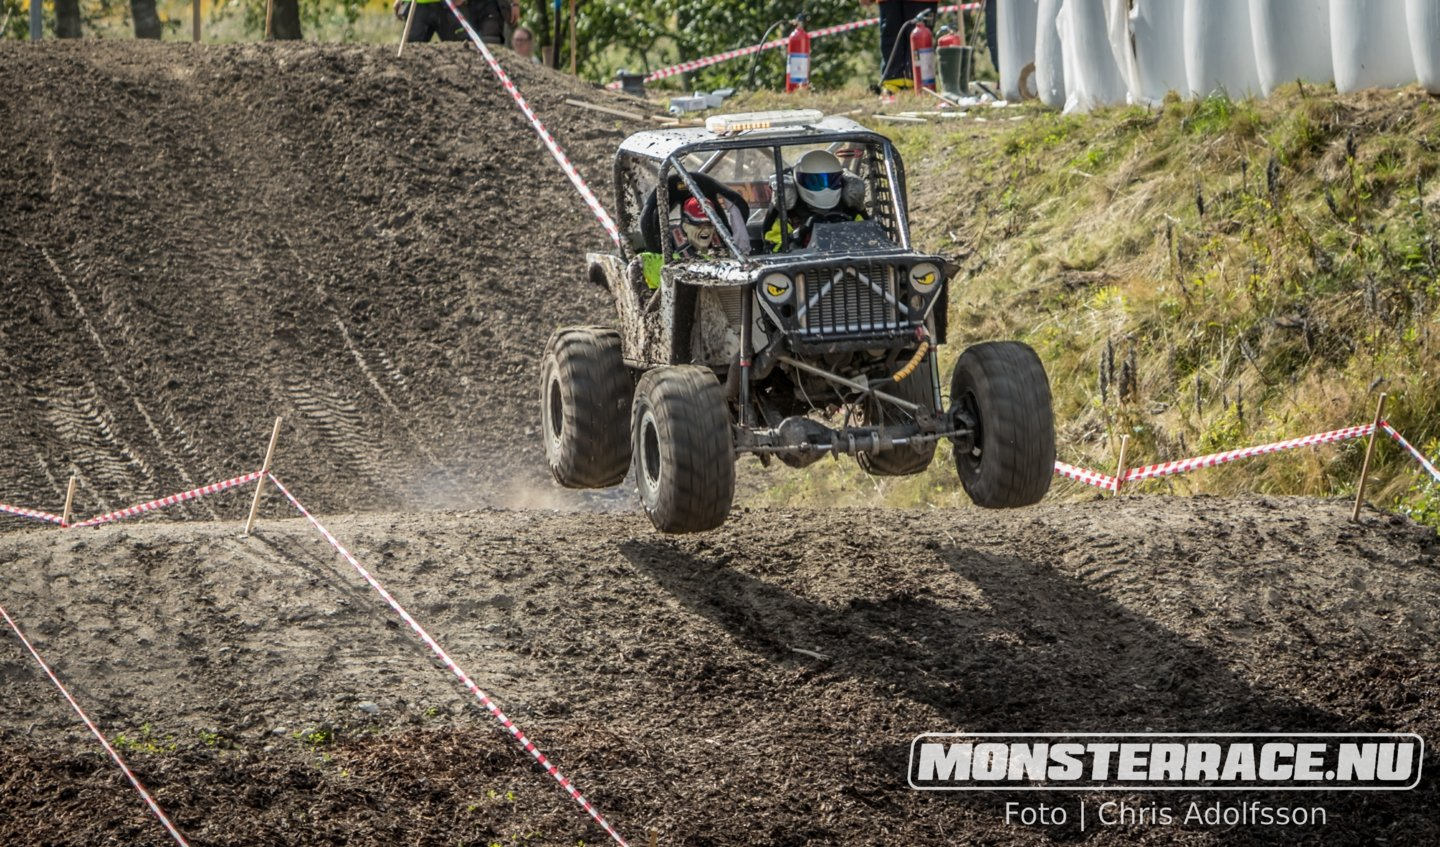 Monsterrace Ed dag 1 (239)